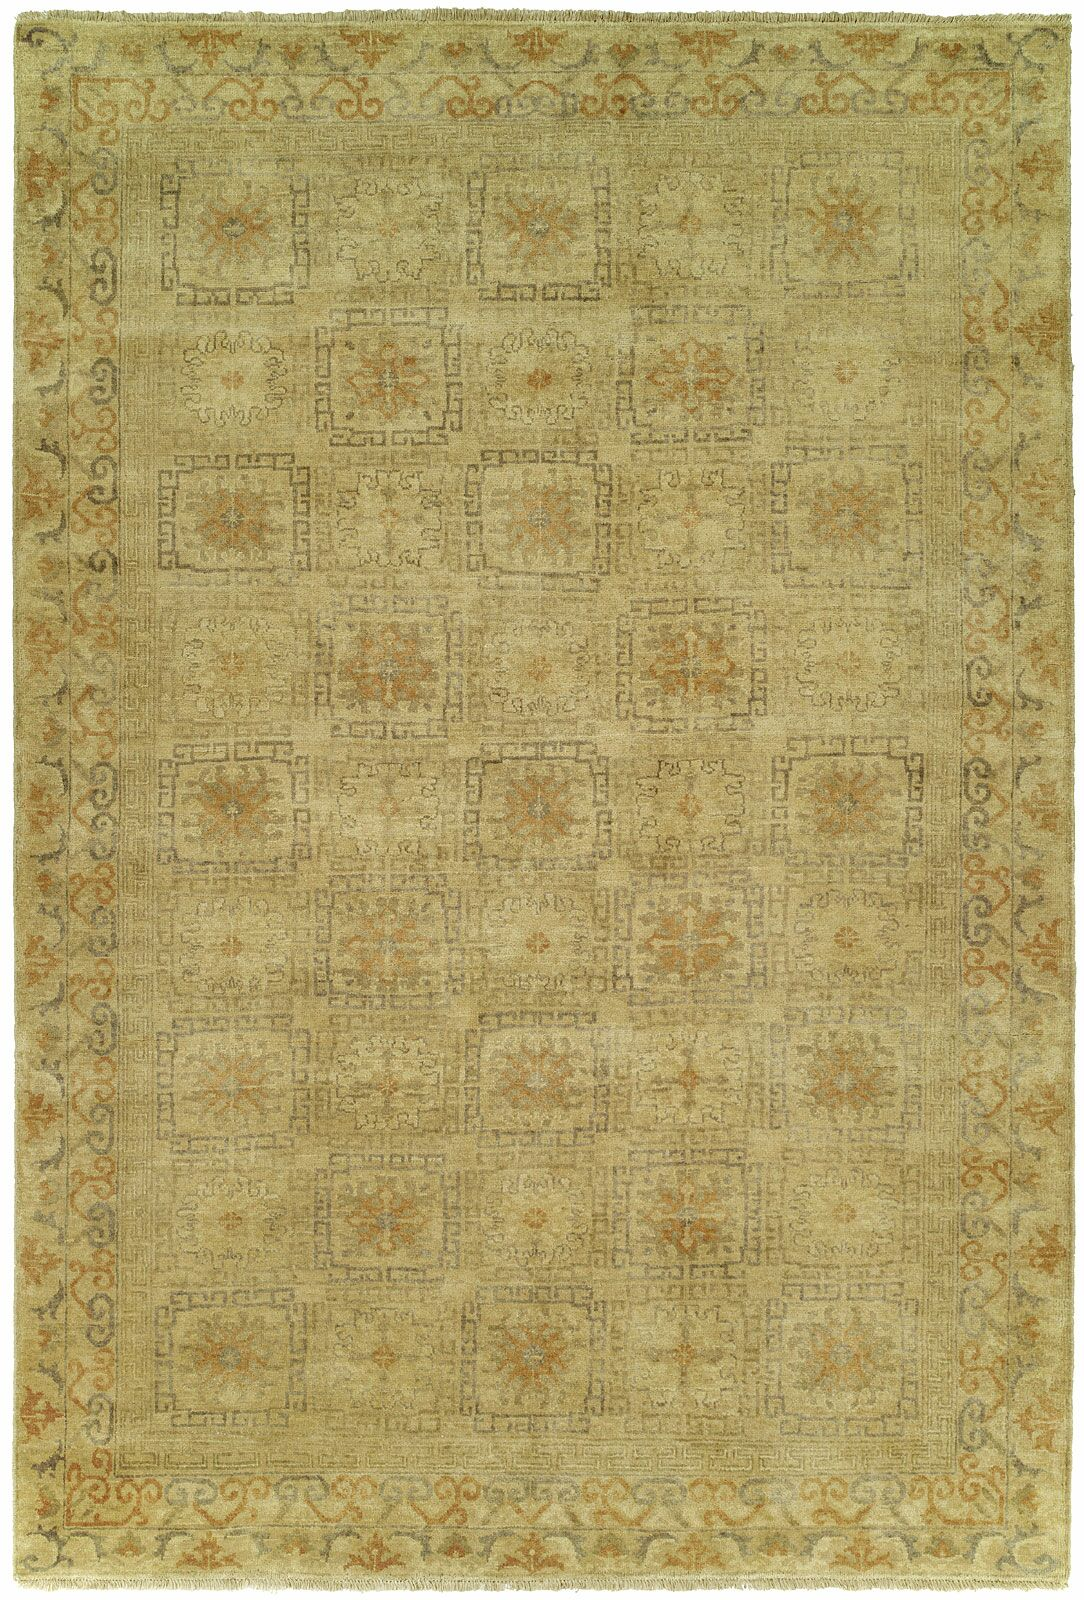 Griswald Hand Knotted Wool Ivory Area Rug Rug Size: Rectangle 12' x 15'